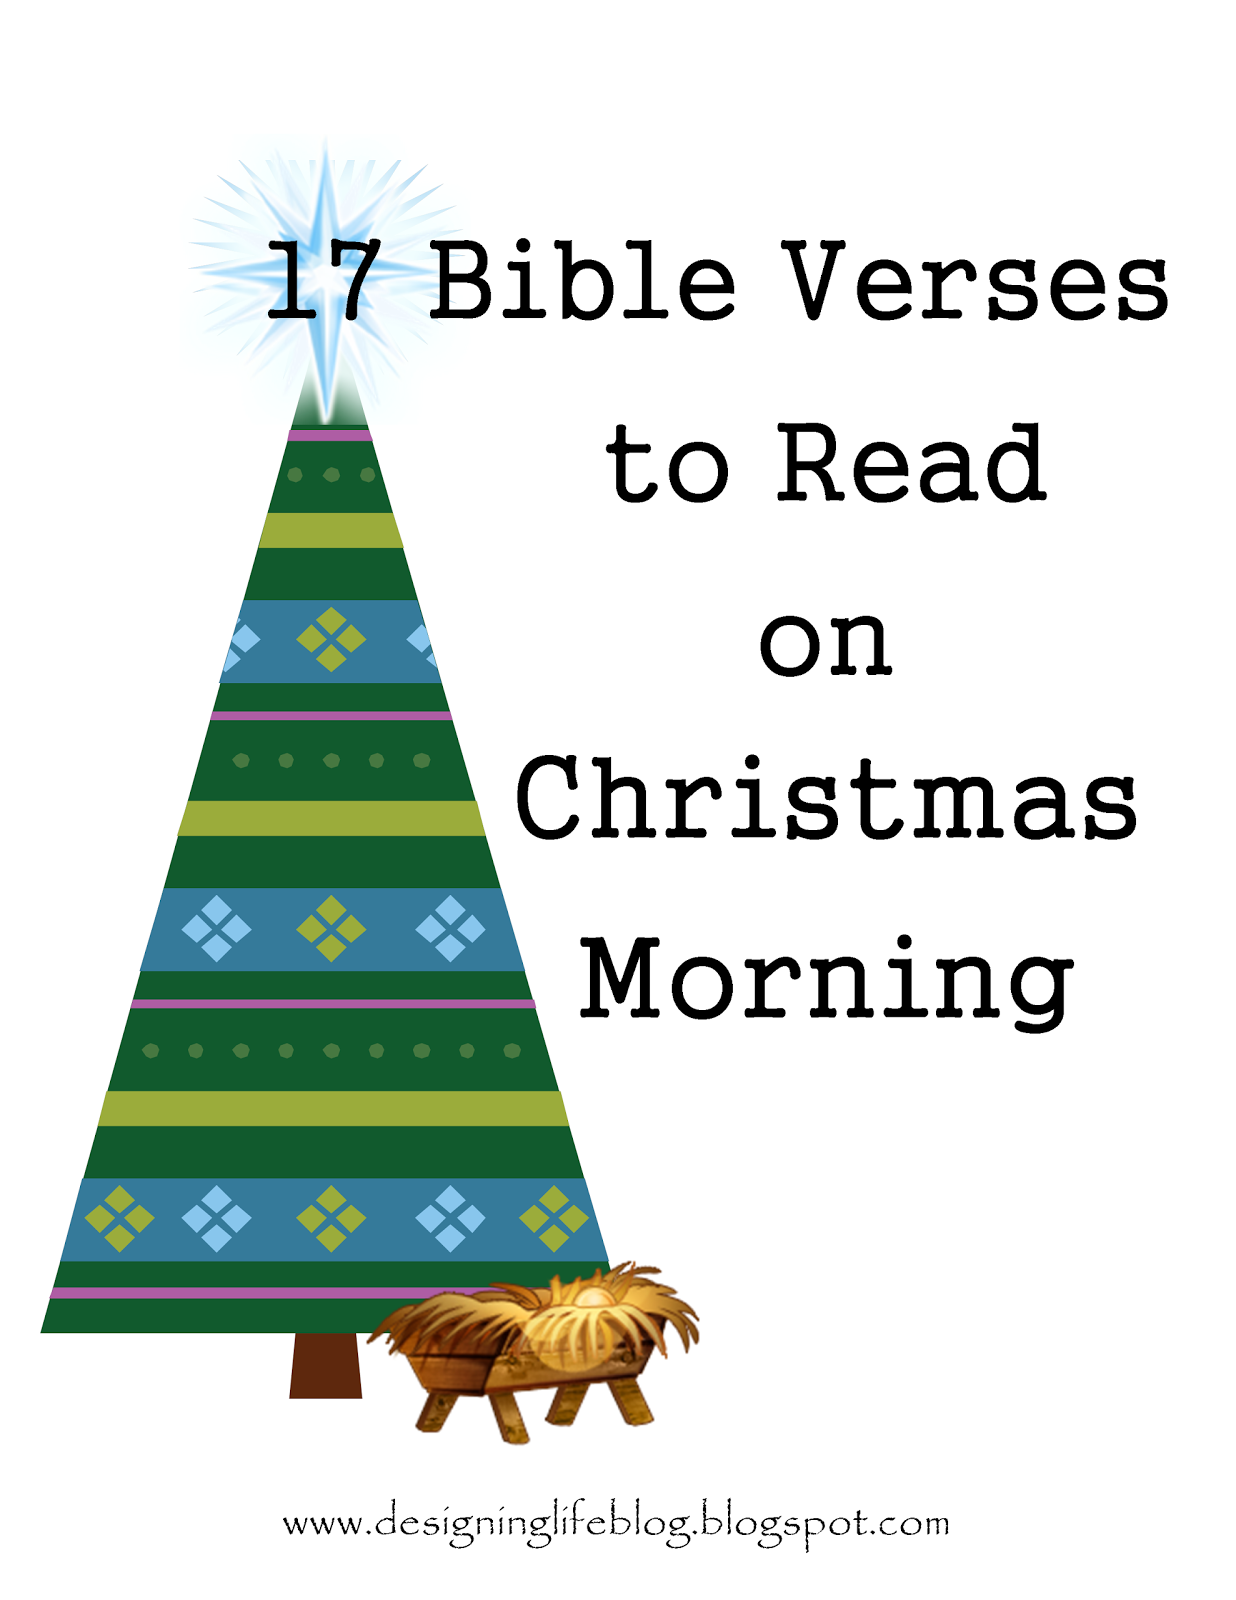 Designing Life 17 Bible Verses To Read On Christmas Morning